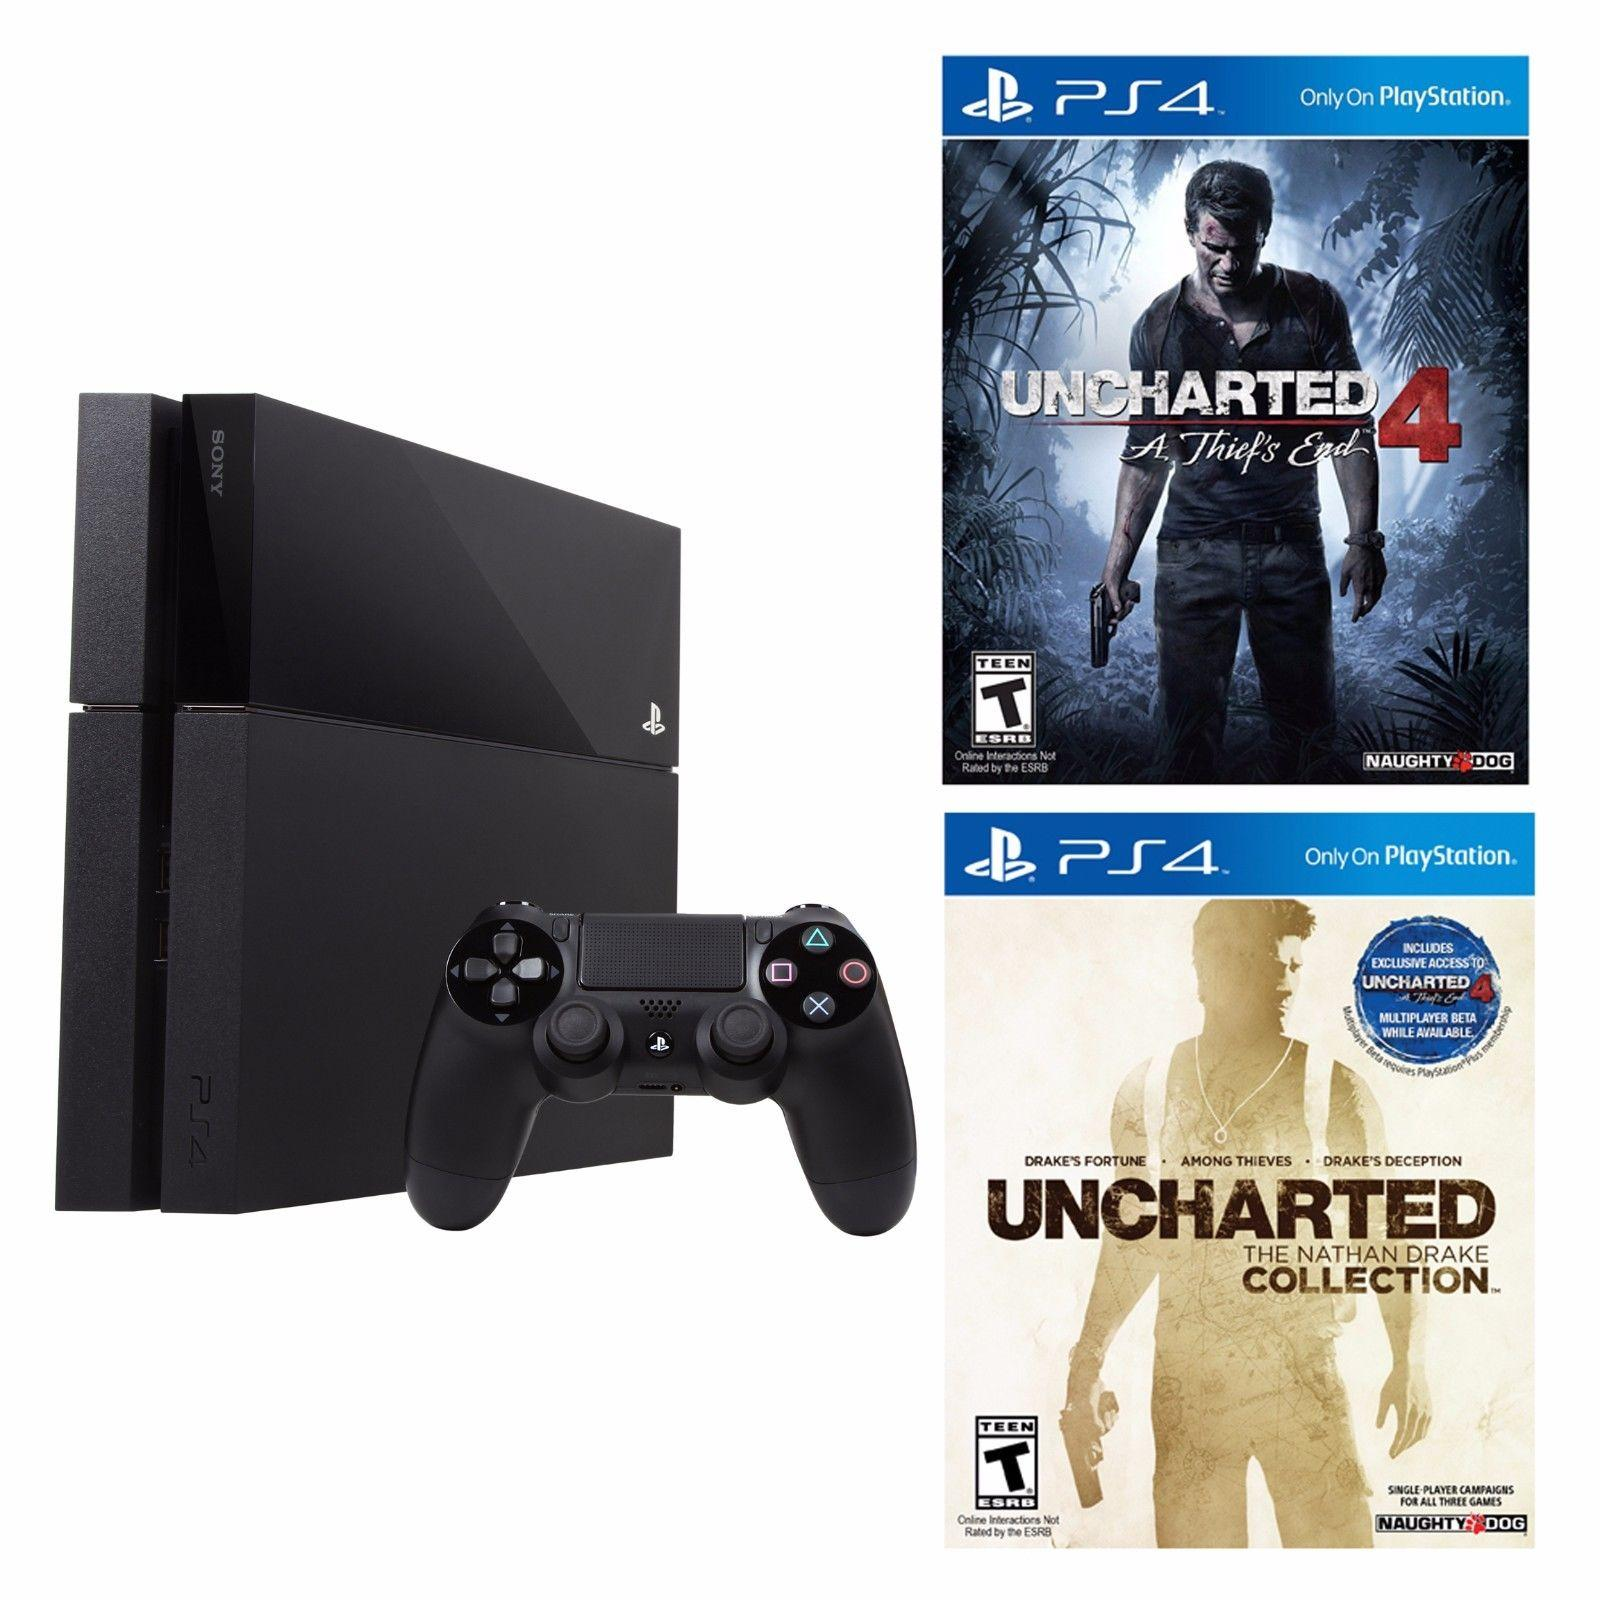 $359 PlayStation 4 Console + Uncharted 4 + Uncharted The Nathan Drake Collection